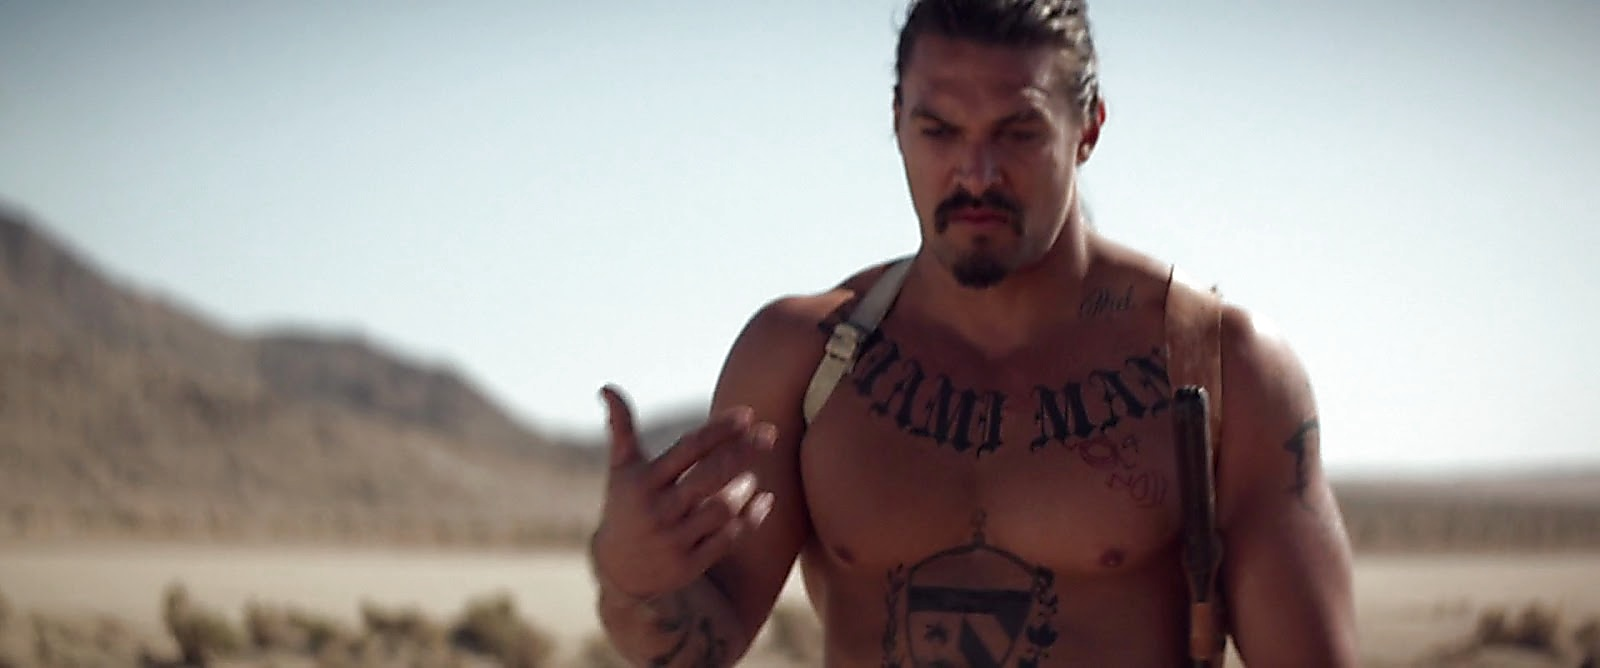 Jason Momoa The Bad Batch 2017 06 23 14jpg